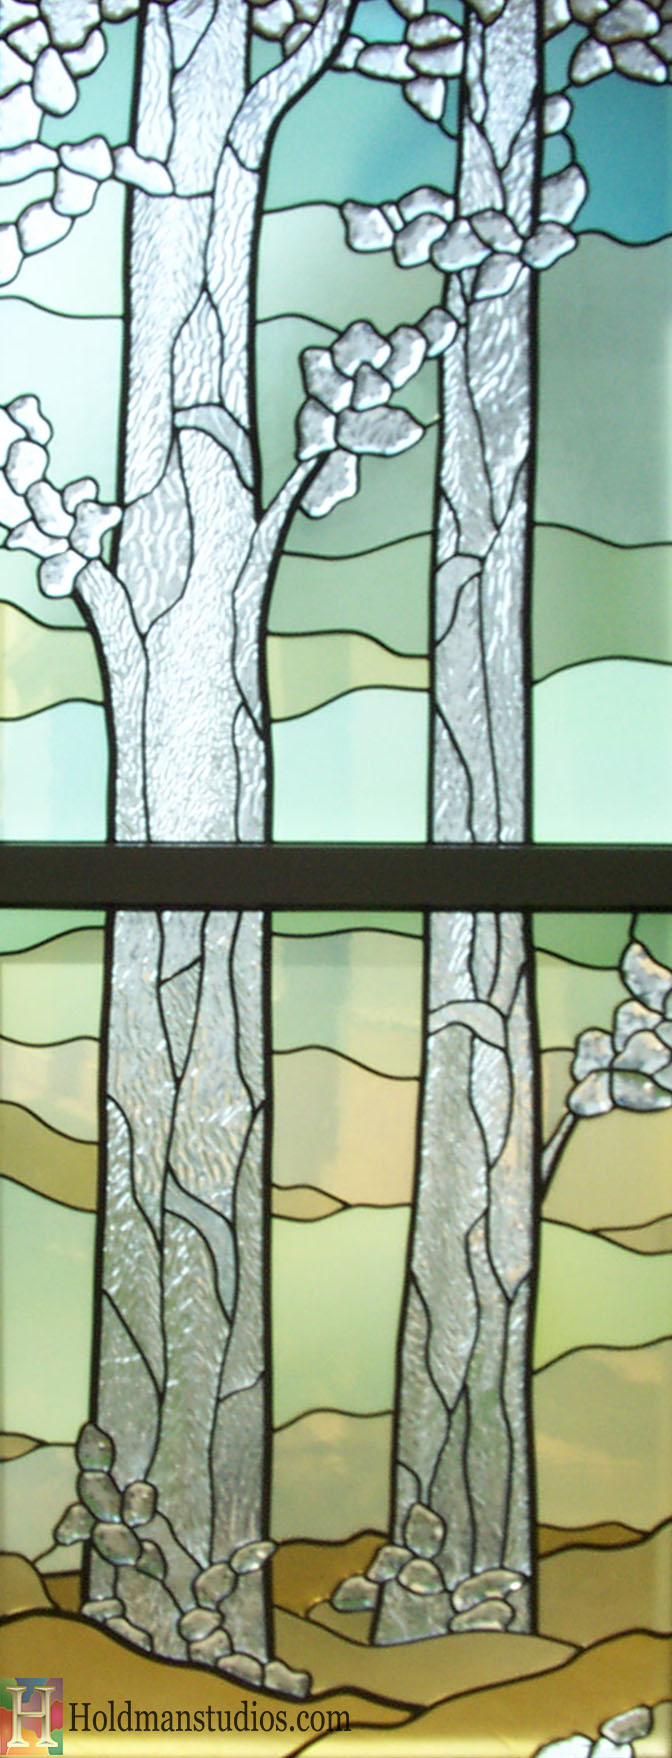 Holdman_Studios_Stained_Art_Glass_LDS_Mormon_Palmyra_New_York_Temple_Sacred_Grove_Tree_of_Life_Window_Panels.jpg